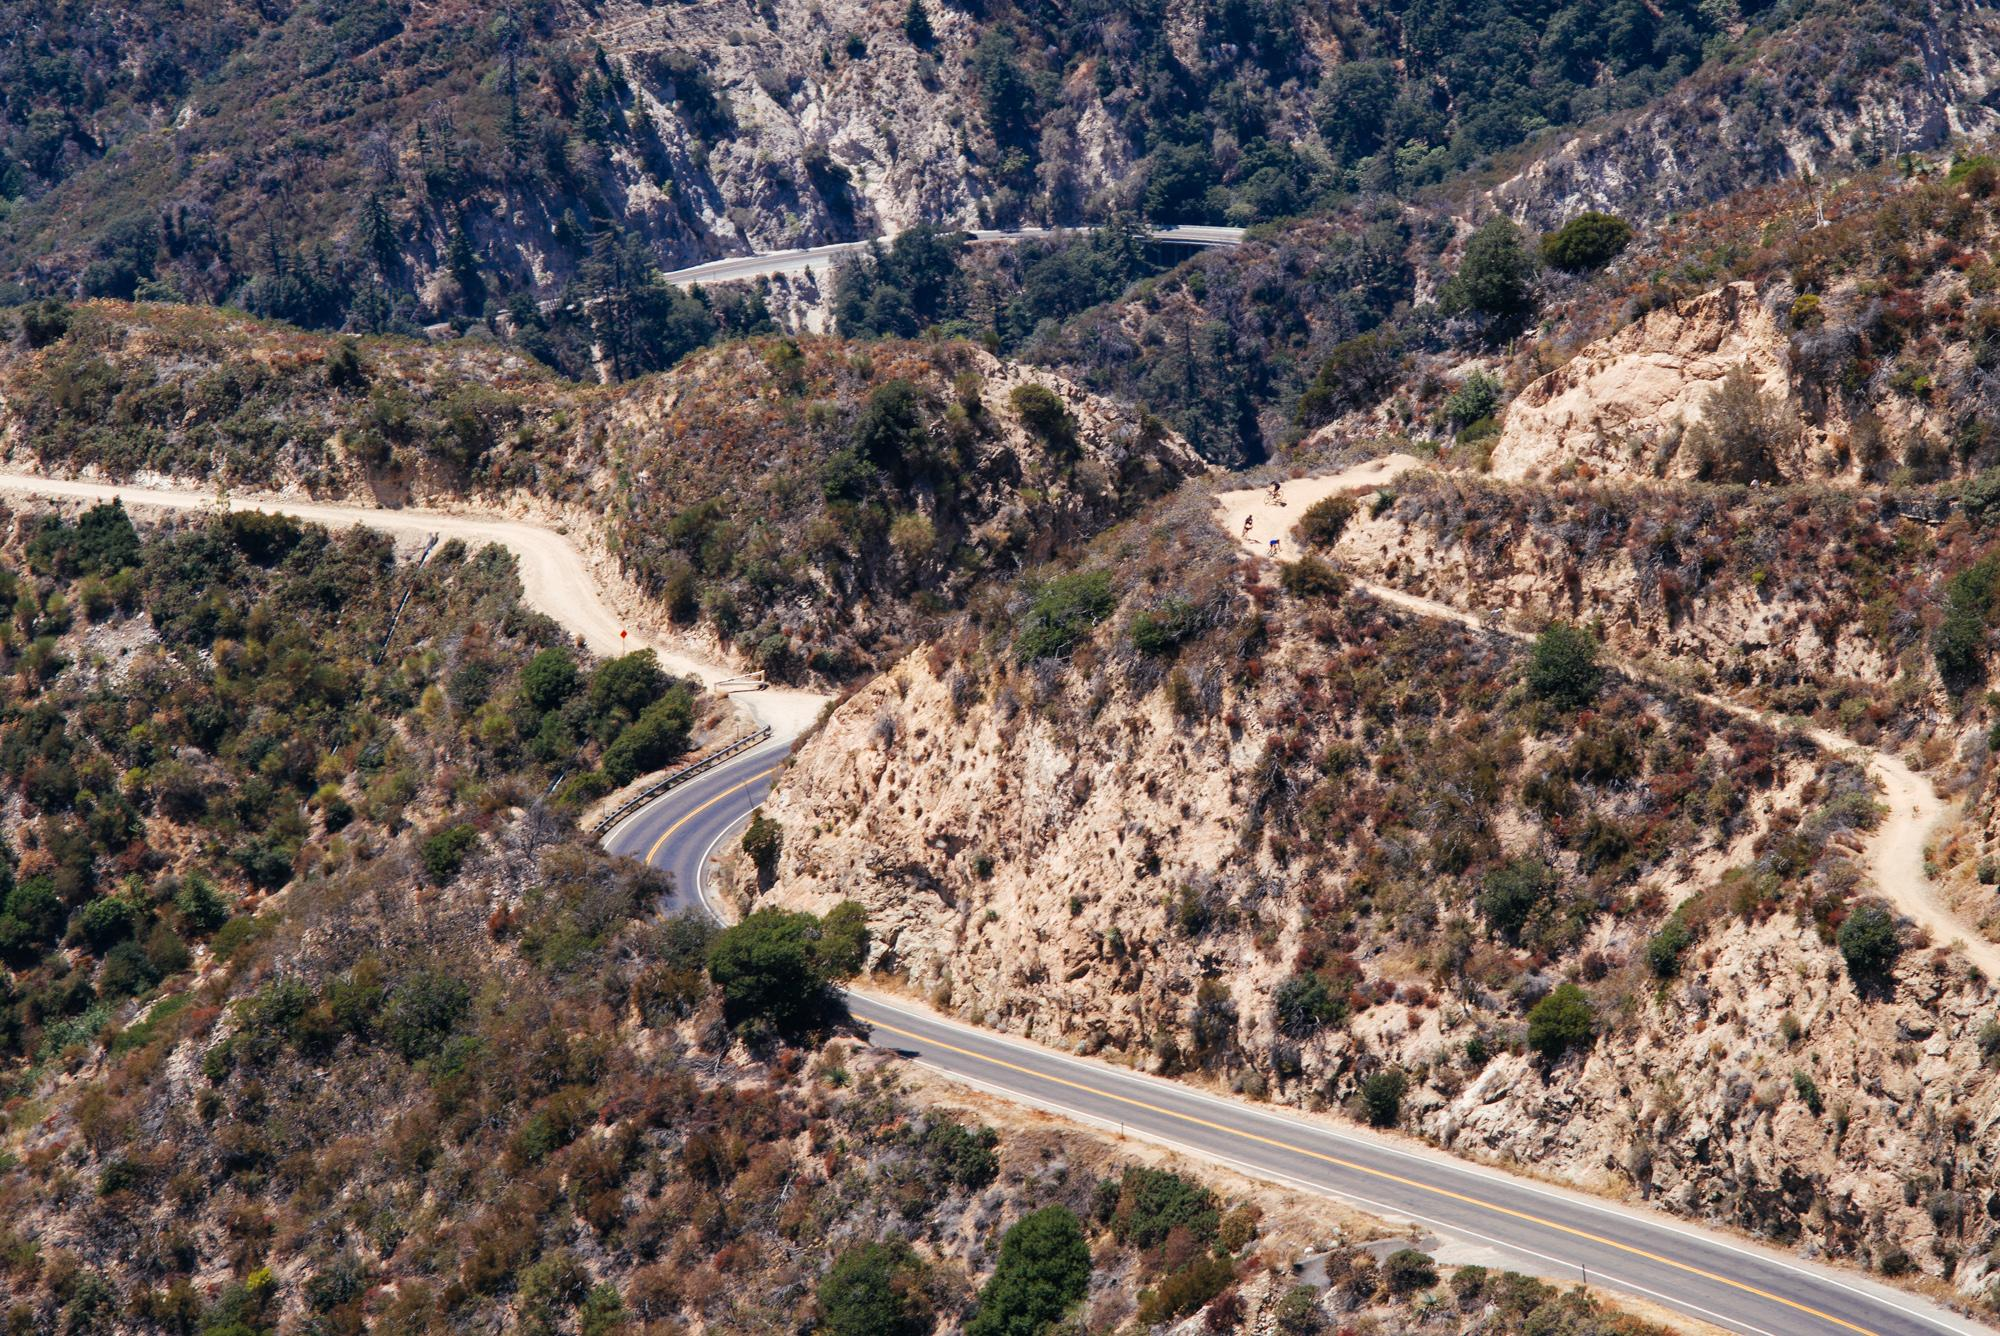 Droppin back down to the Angeles Crest Highway